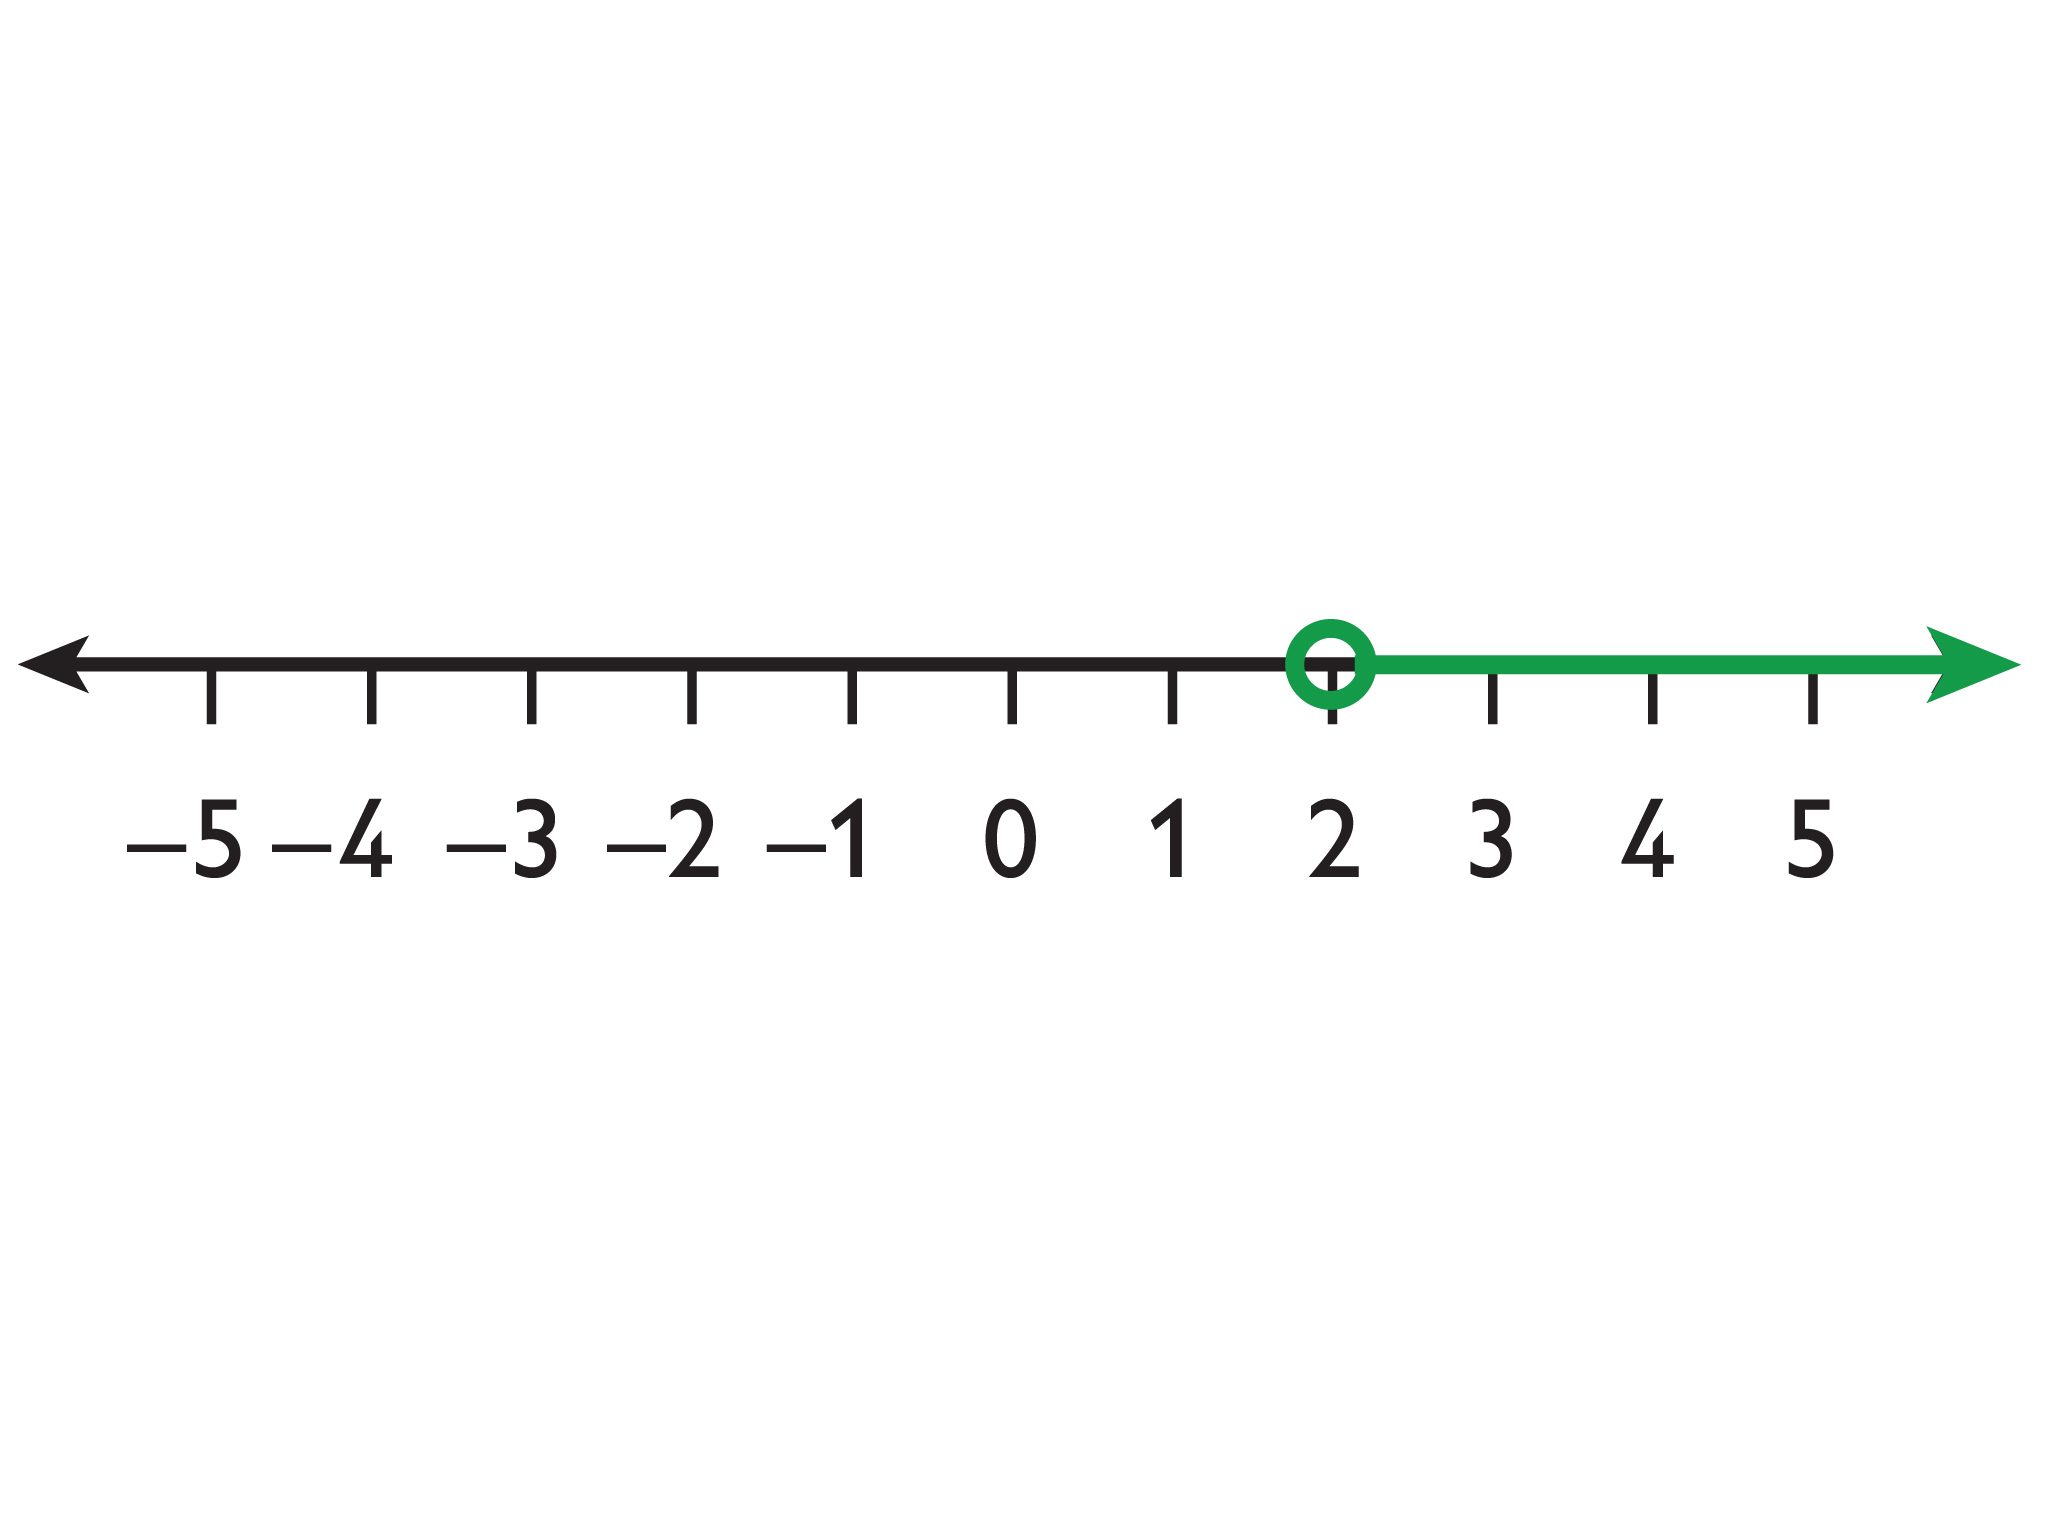 Math grade 6 equations and inequalities lesson 10 oer commons the solutions to x a are represented on the number line with an arrow pointing to the left from a closed circle at a biocorpaavc Gallery